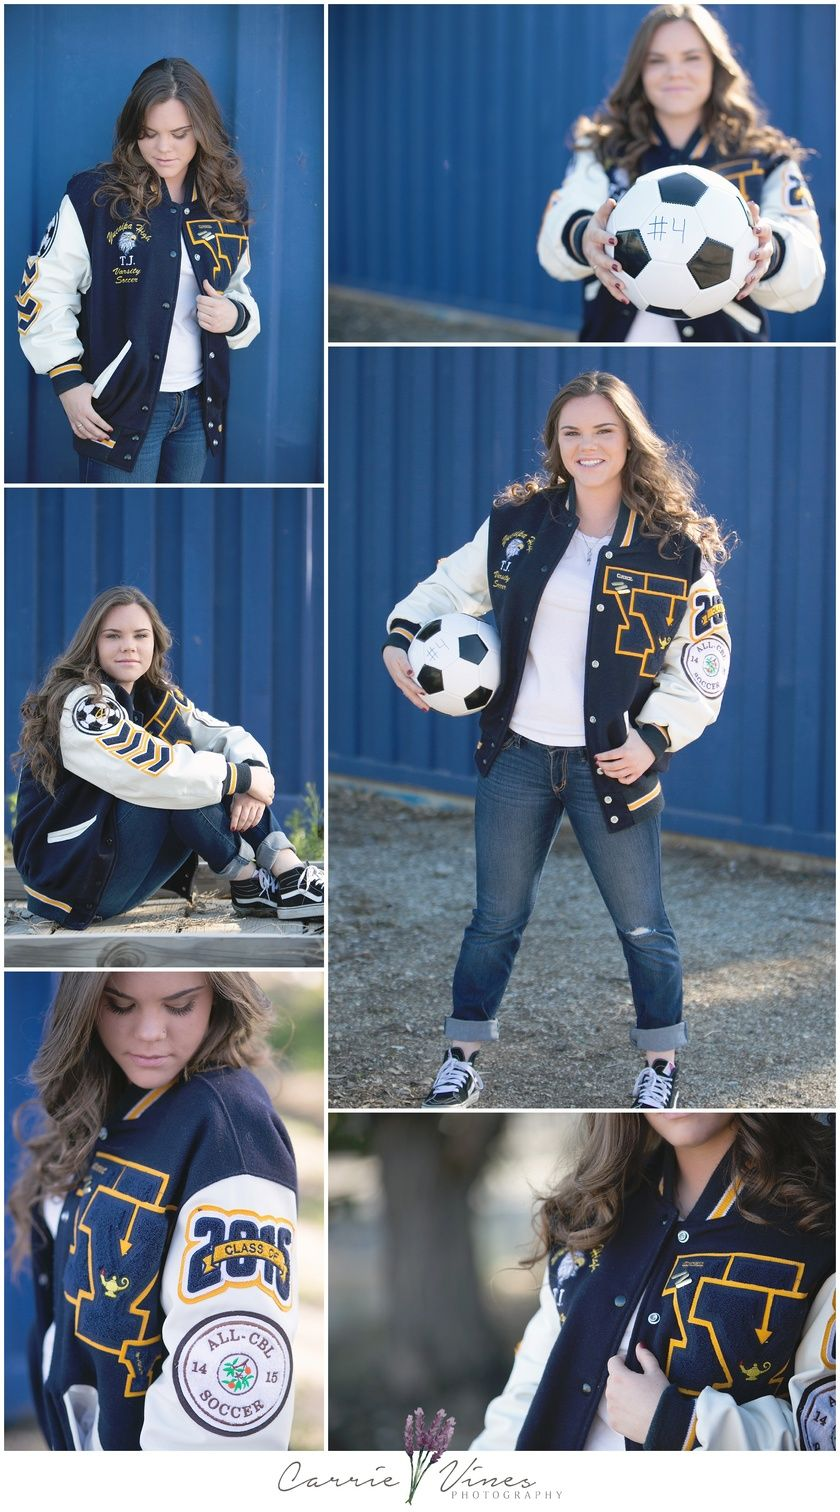 Yucaipa Senior Photography Tj Yucaipa High School Class Of 2016 Soccer Senior Pictures Volleyball Senior Pictures Letterman Jacket Ideas